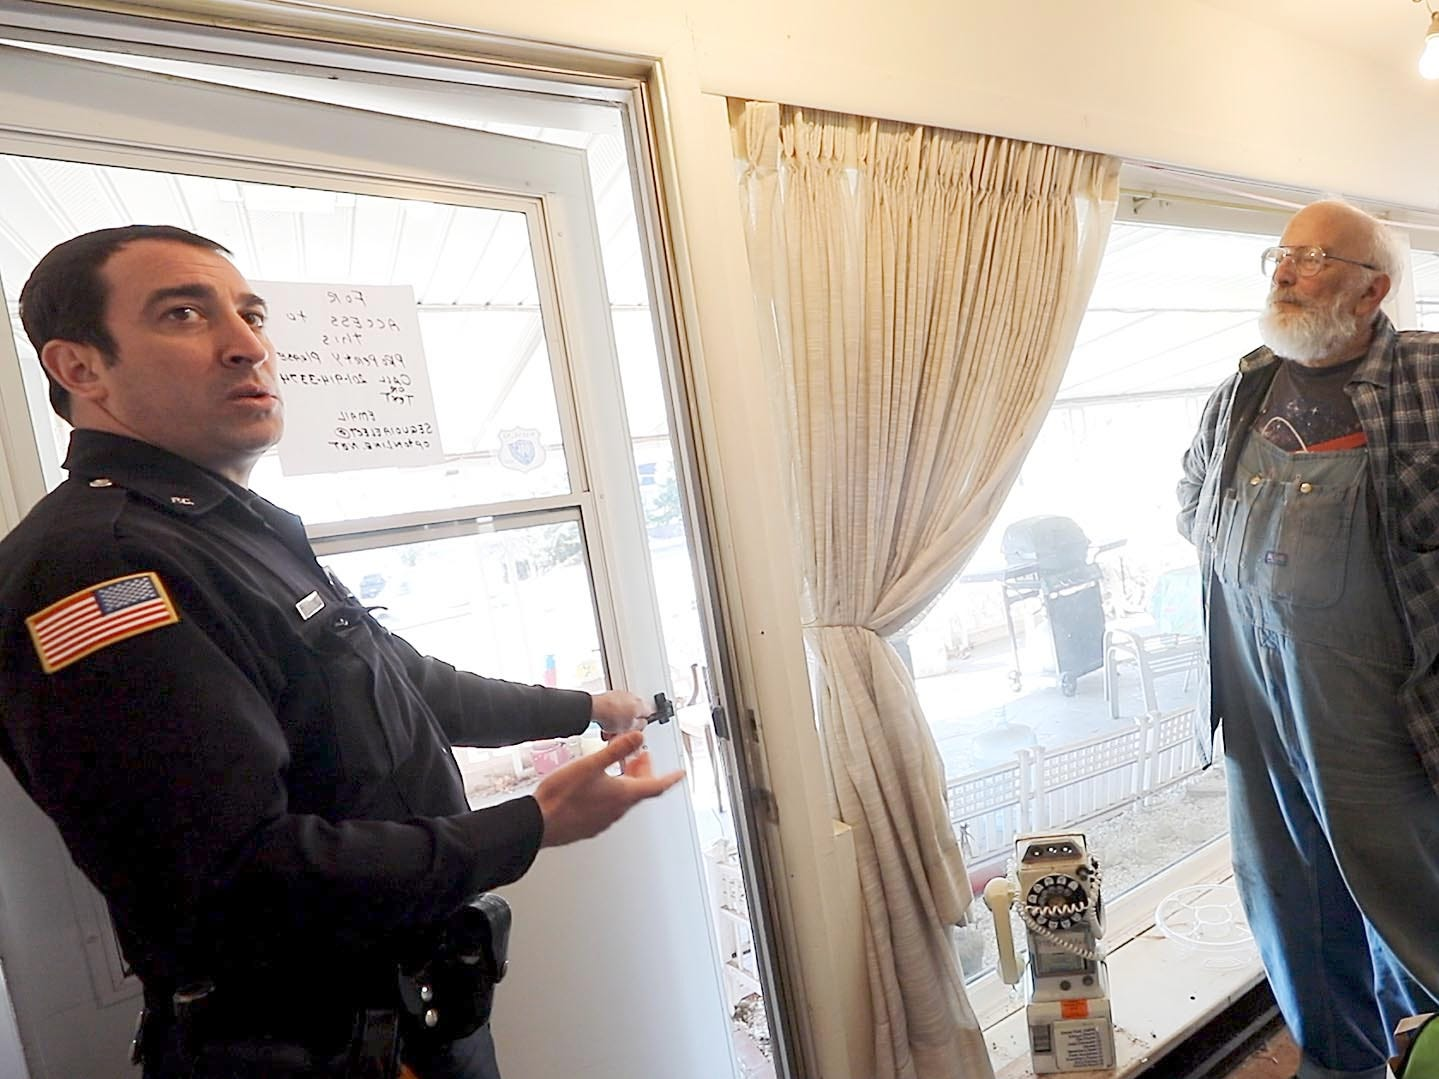 Passaic County Sheriff's Officer Nick D'Agostini informs Charles D'Alessandro that his eviction has been postponed for another week. He is being evicted from the home on March 19, 2019, after failing to pay the mortgage for the past 10 years.